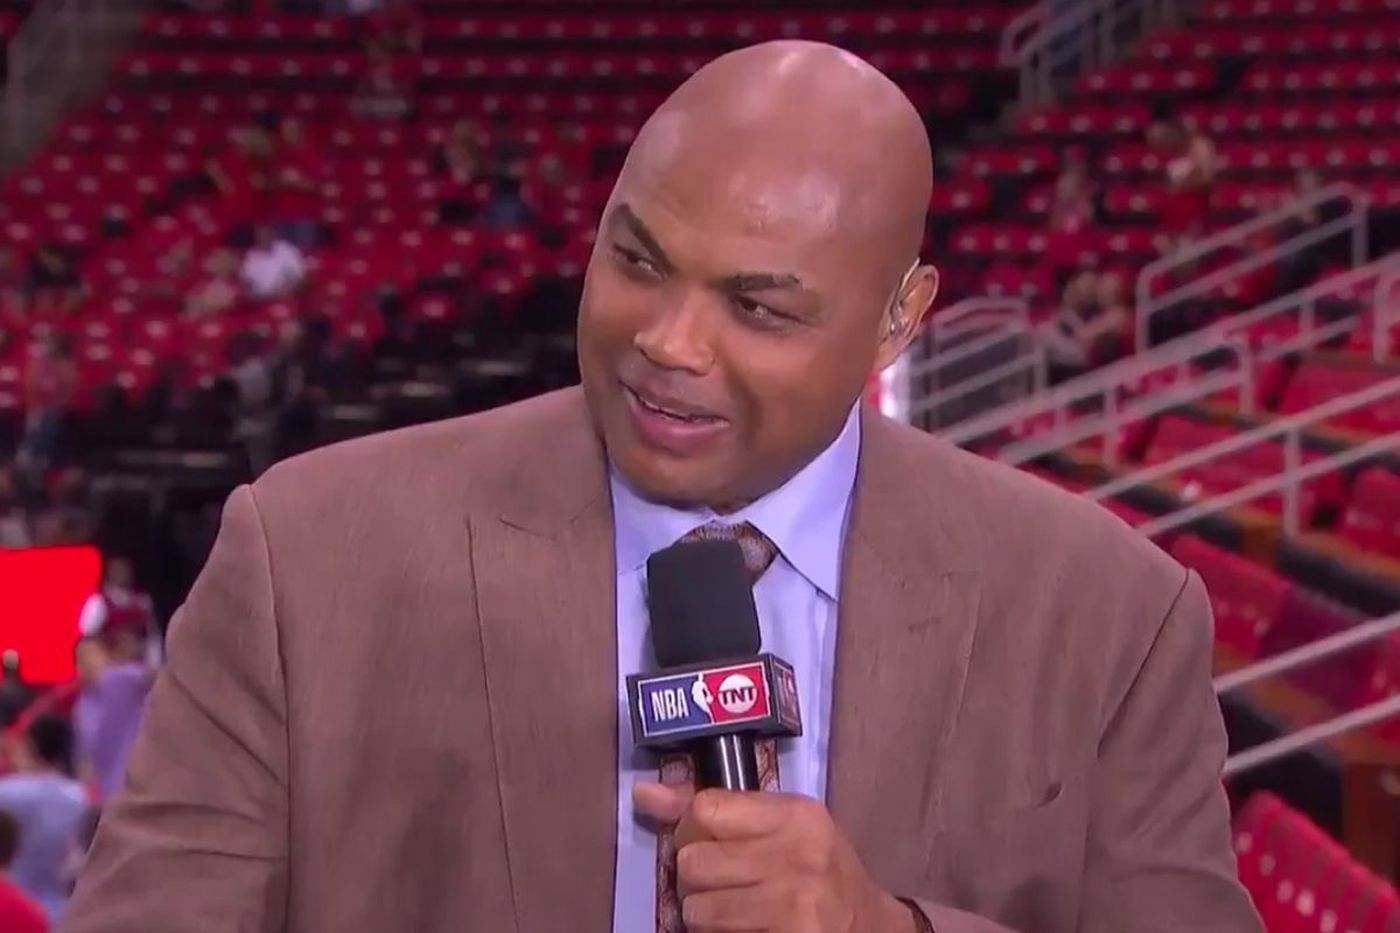 Charles Barkley gets pranked on TNT, ESPN analyst Rex Ryan rips Tony Romo